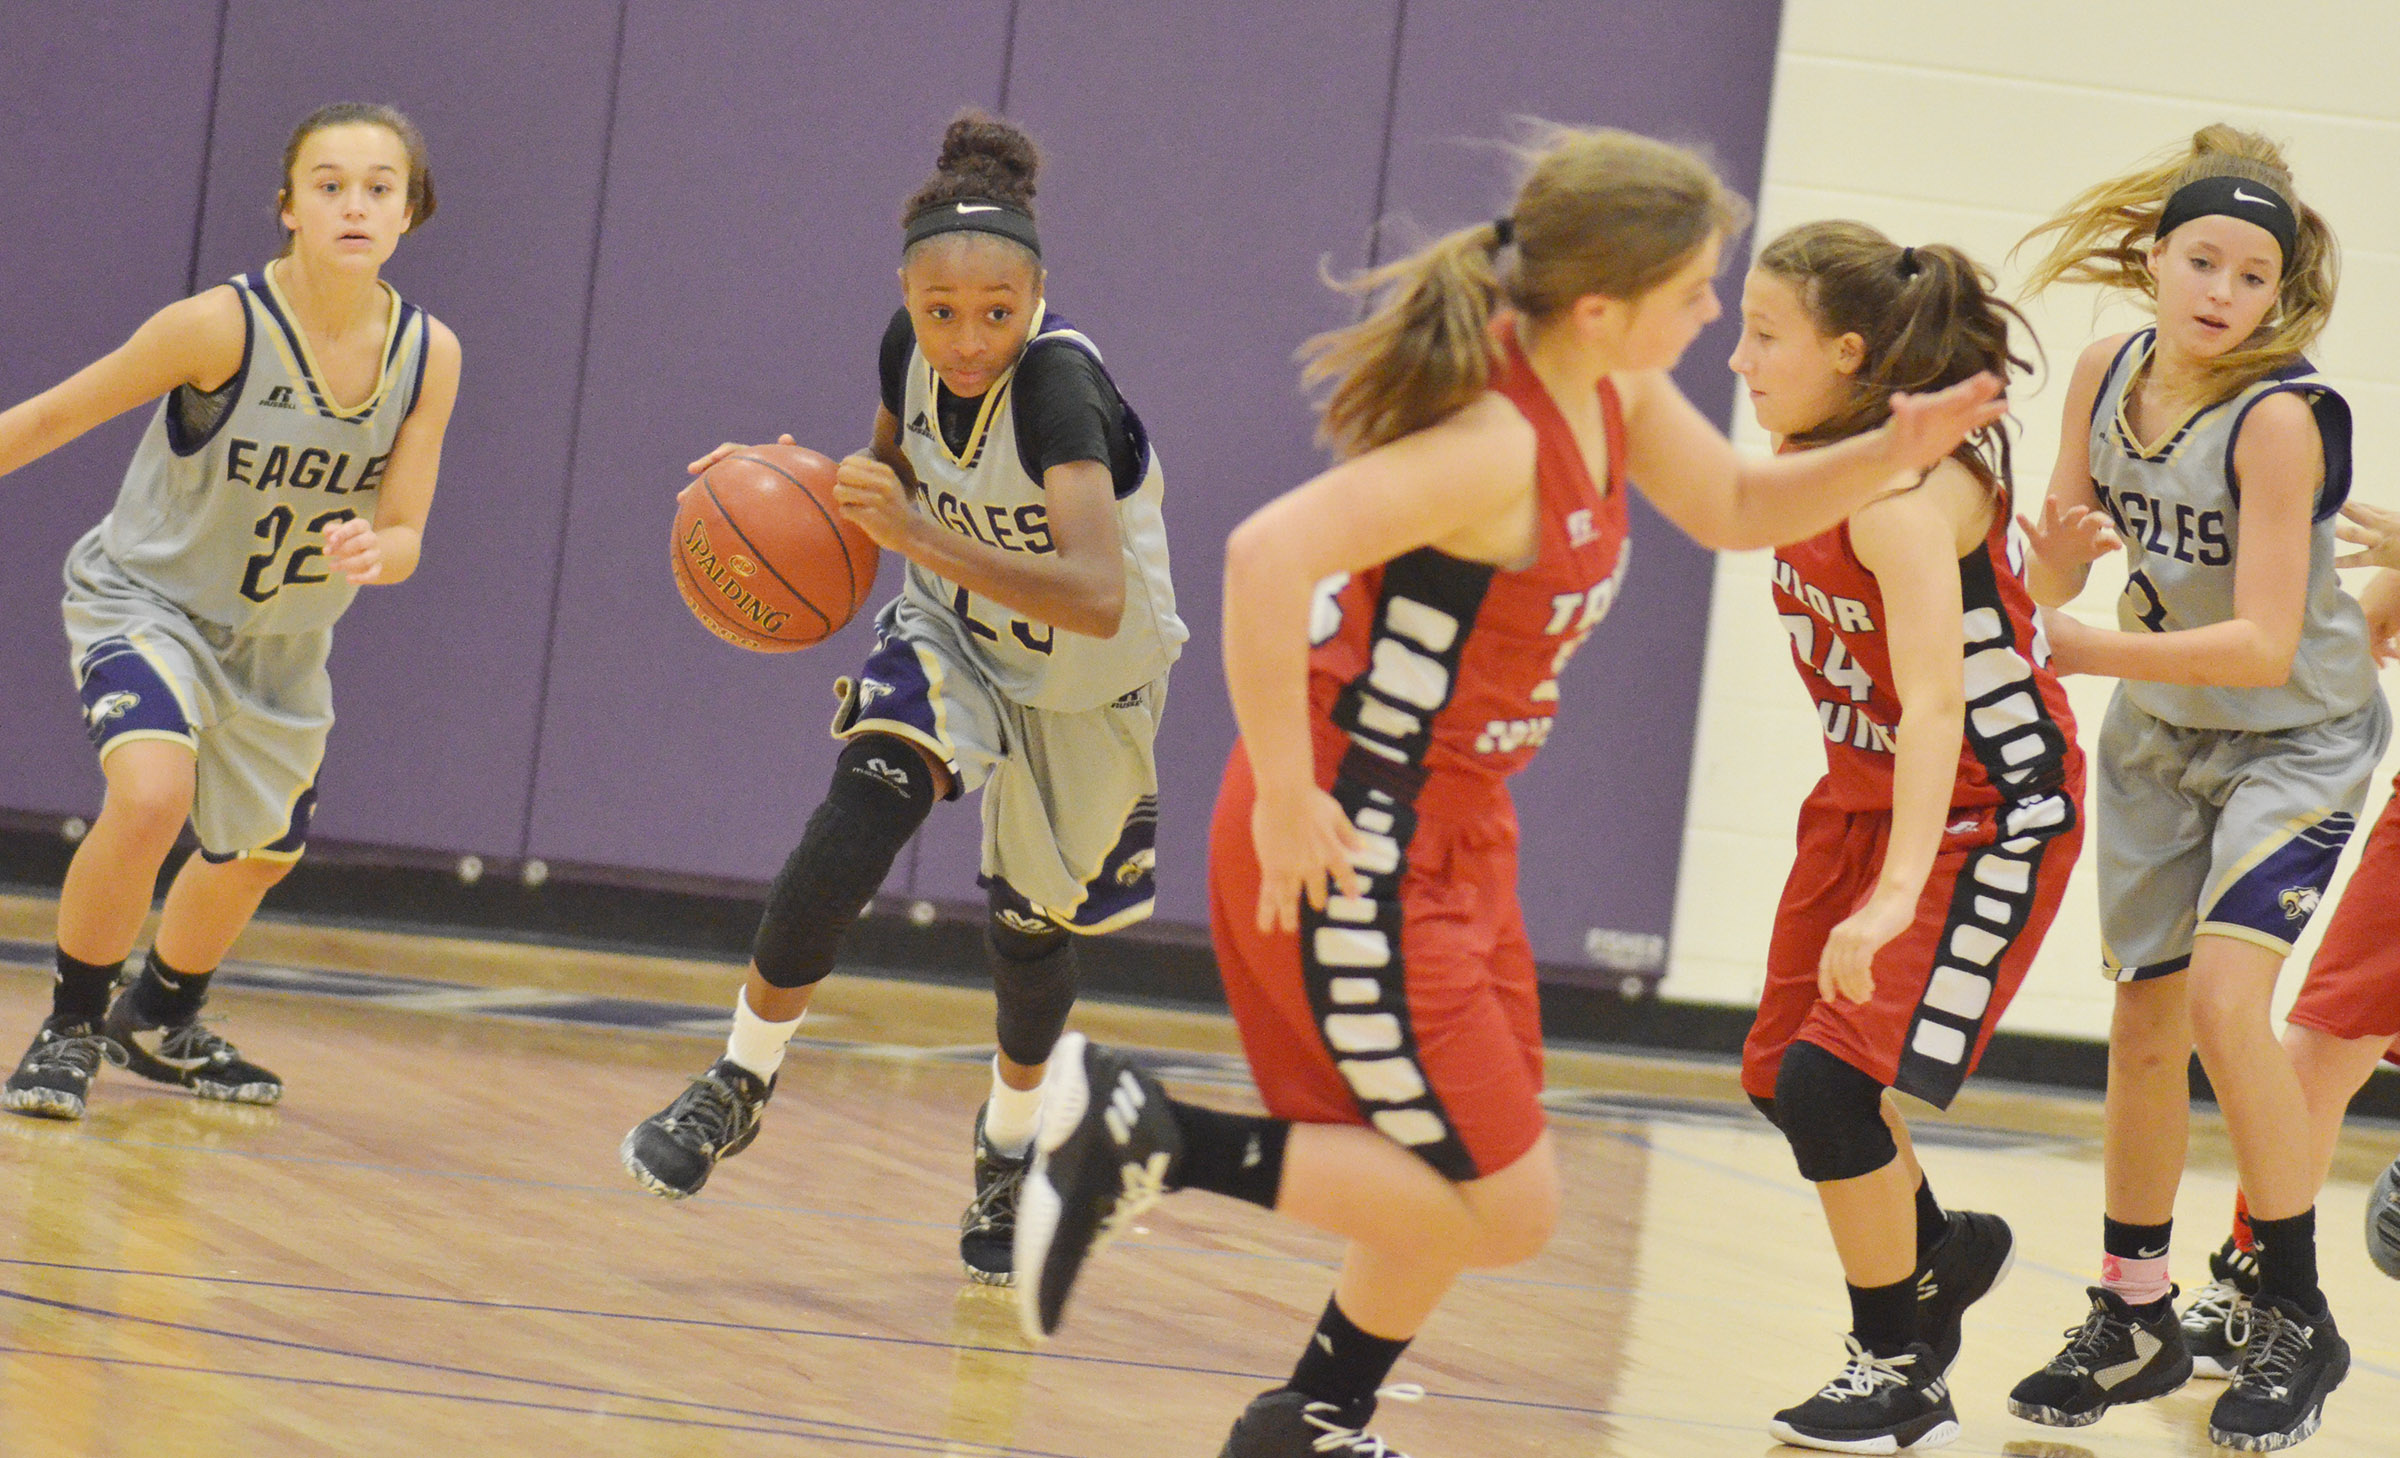 CMS eighth-grader Bri Gowdy, center, steals the ball and heads to the goal.